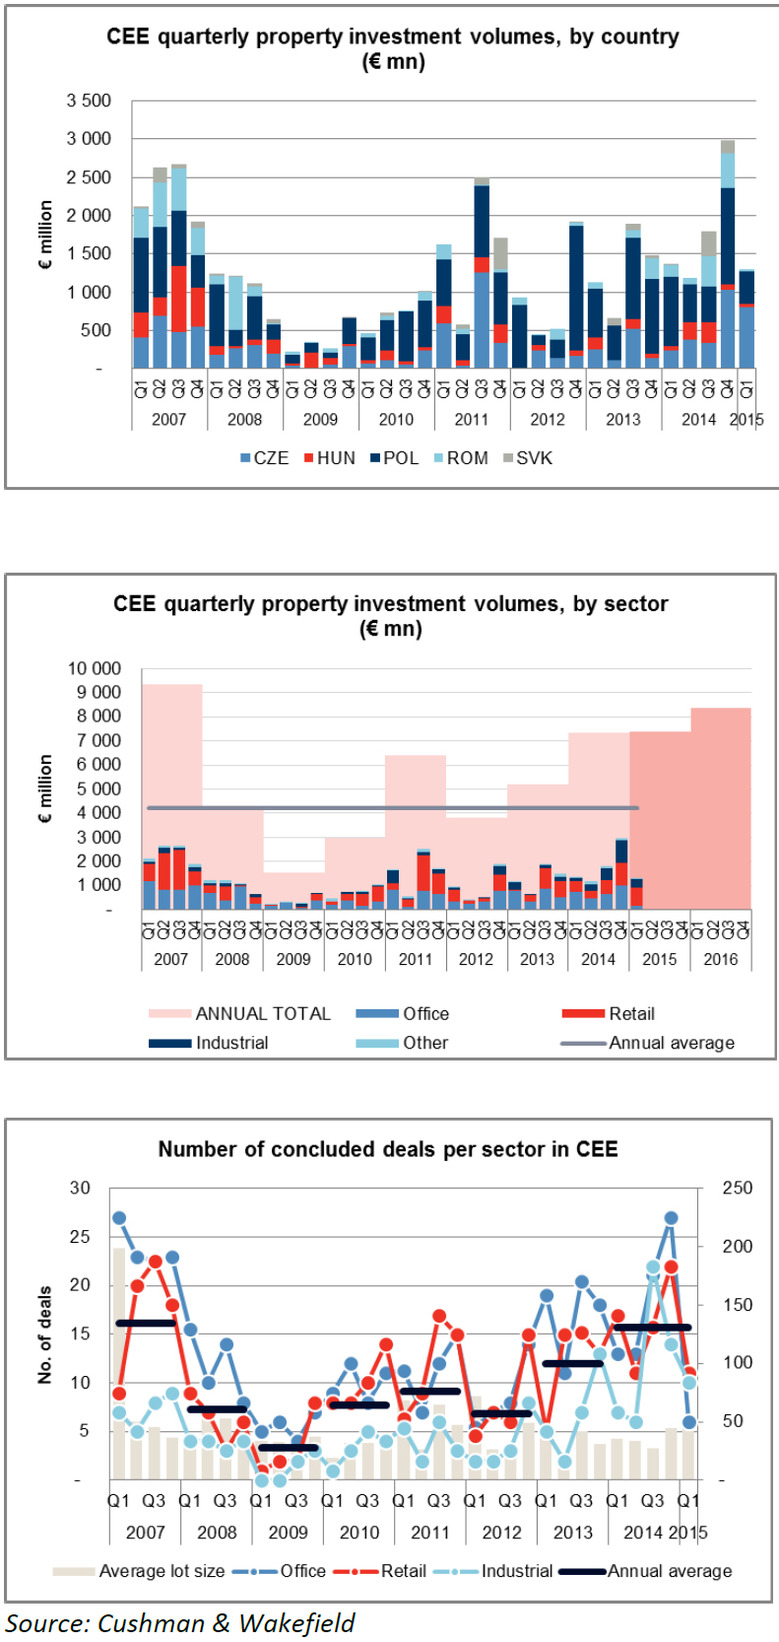 CEE-Quarterly-Property-Investment.jpg